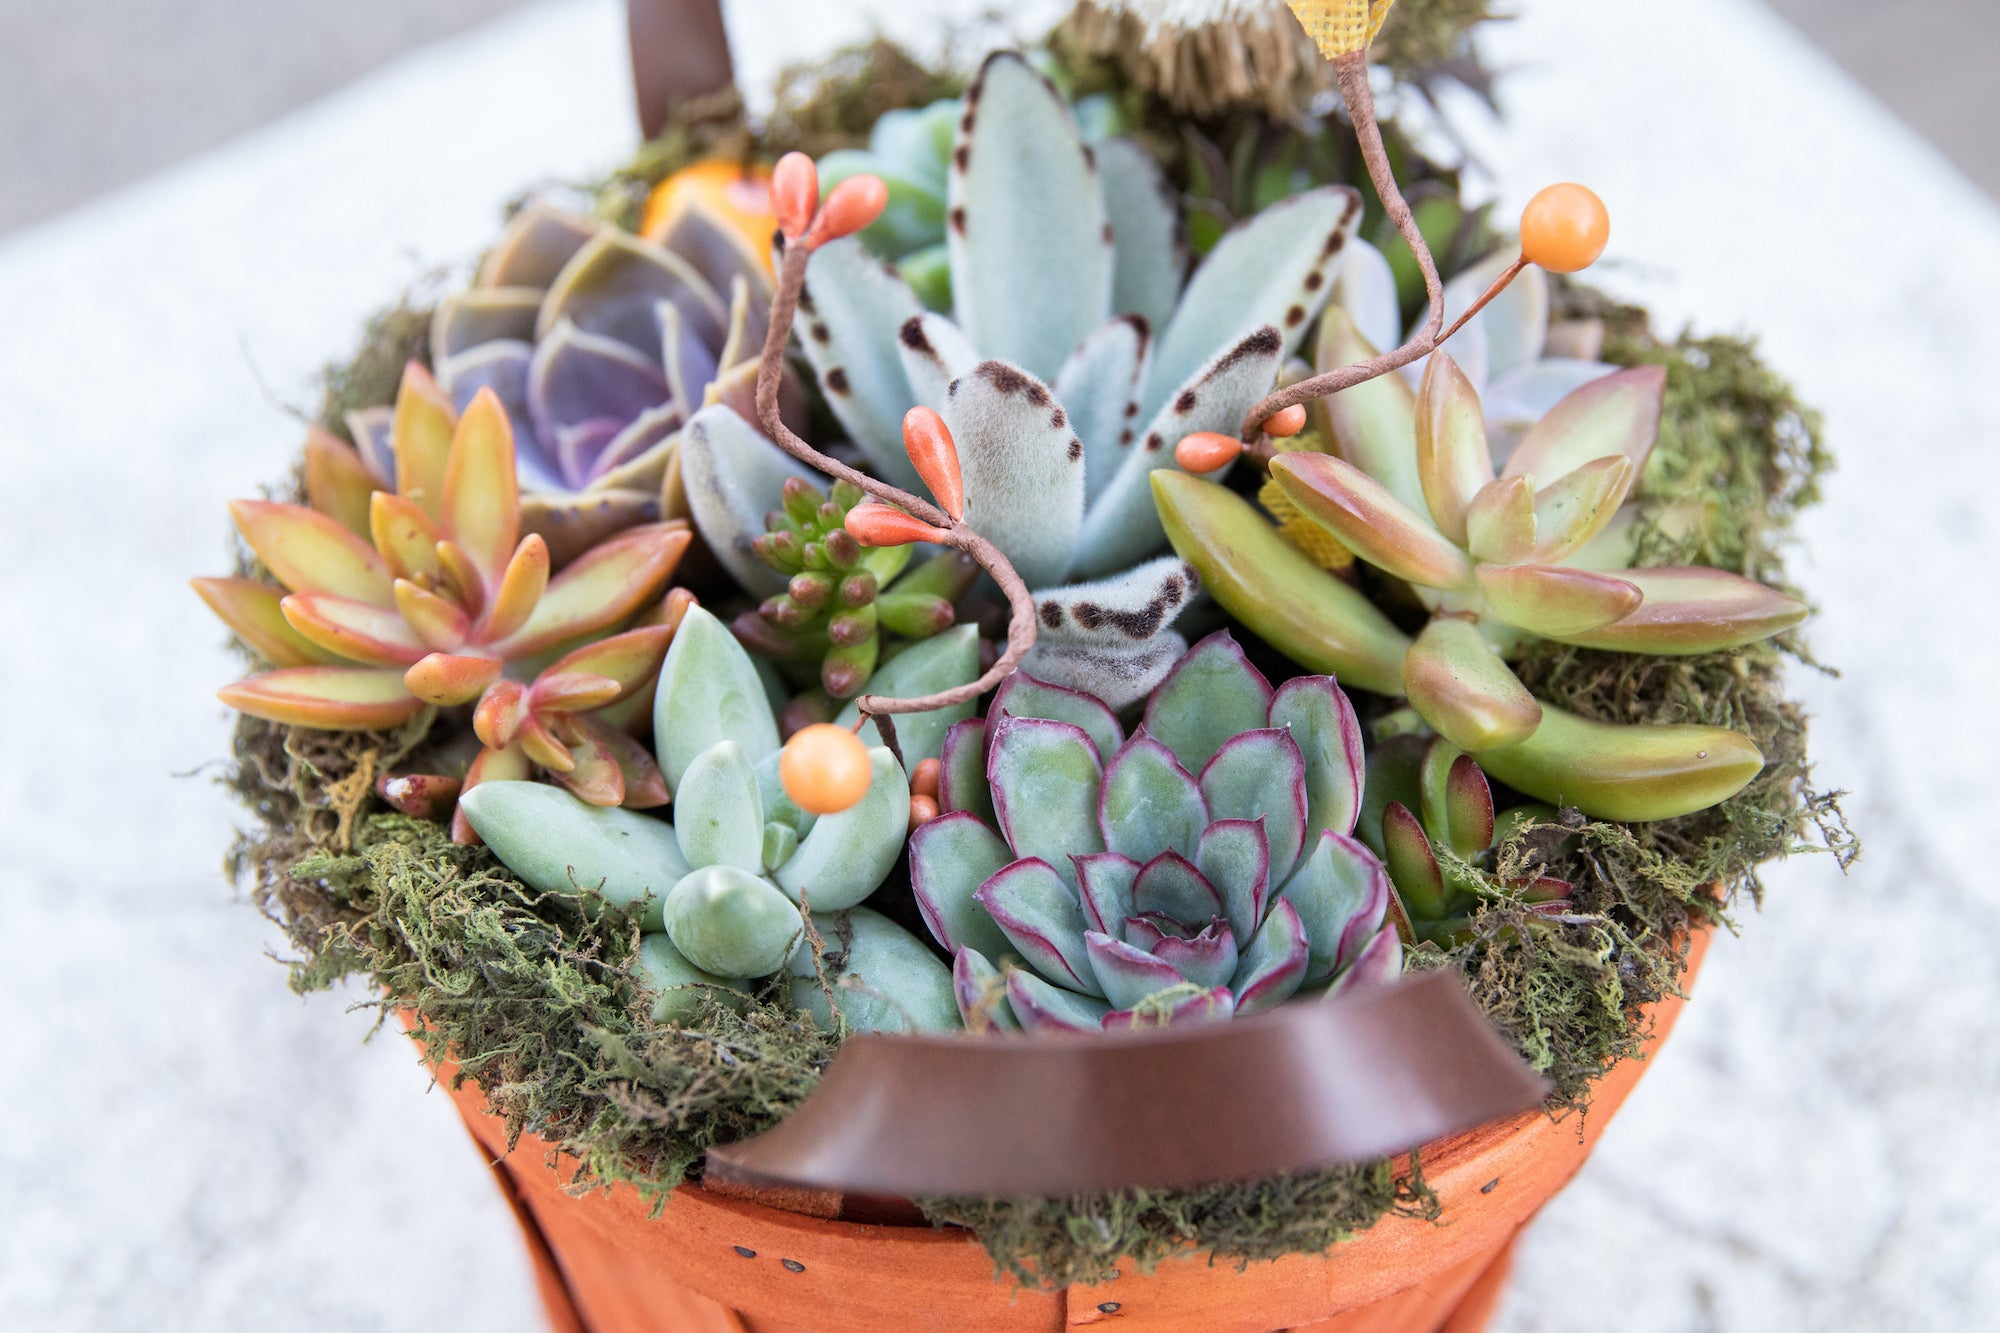 simple DIY with succulents by succy crafts